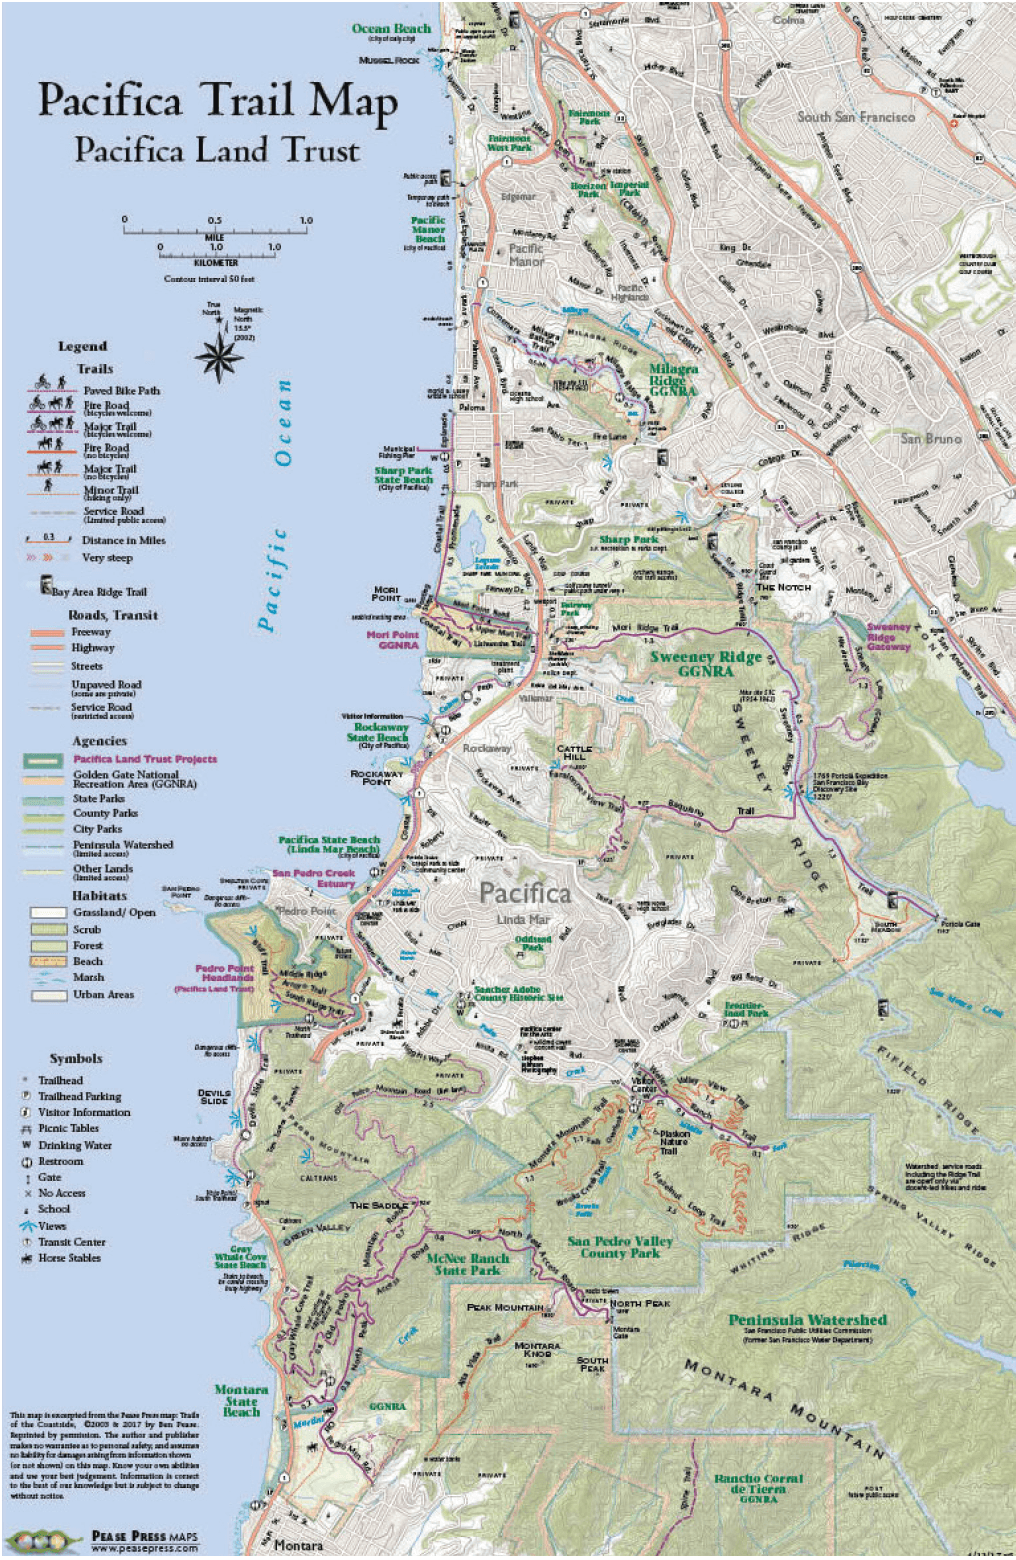 Pacifica-Trail-Map-pg2